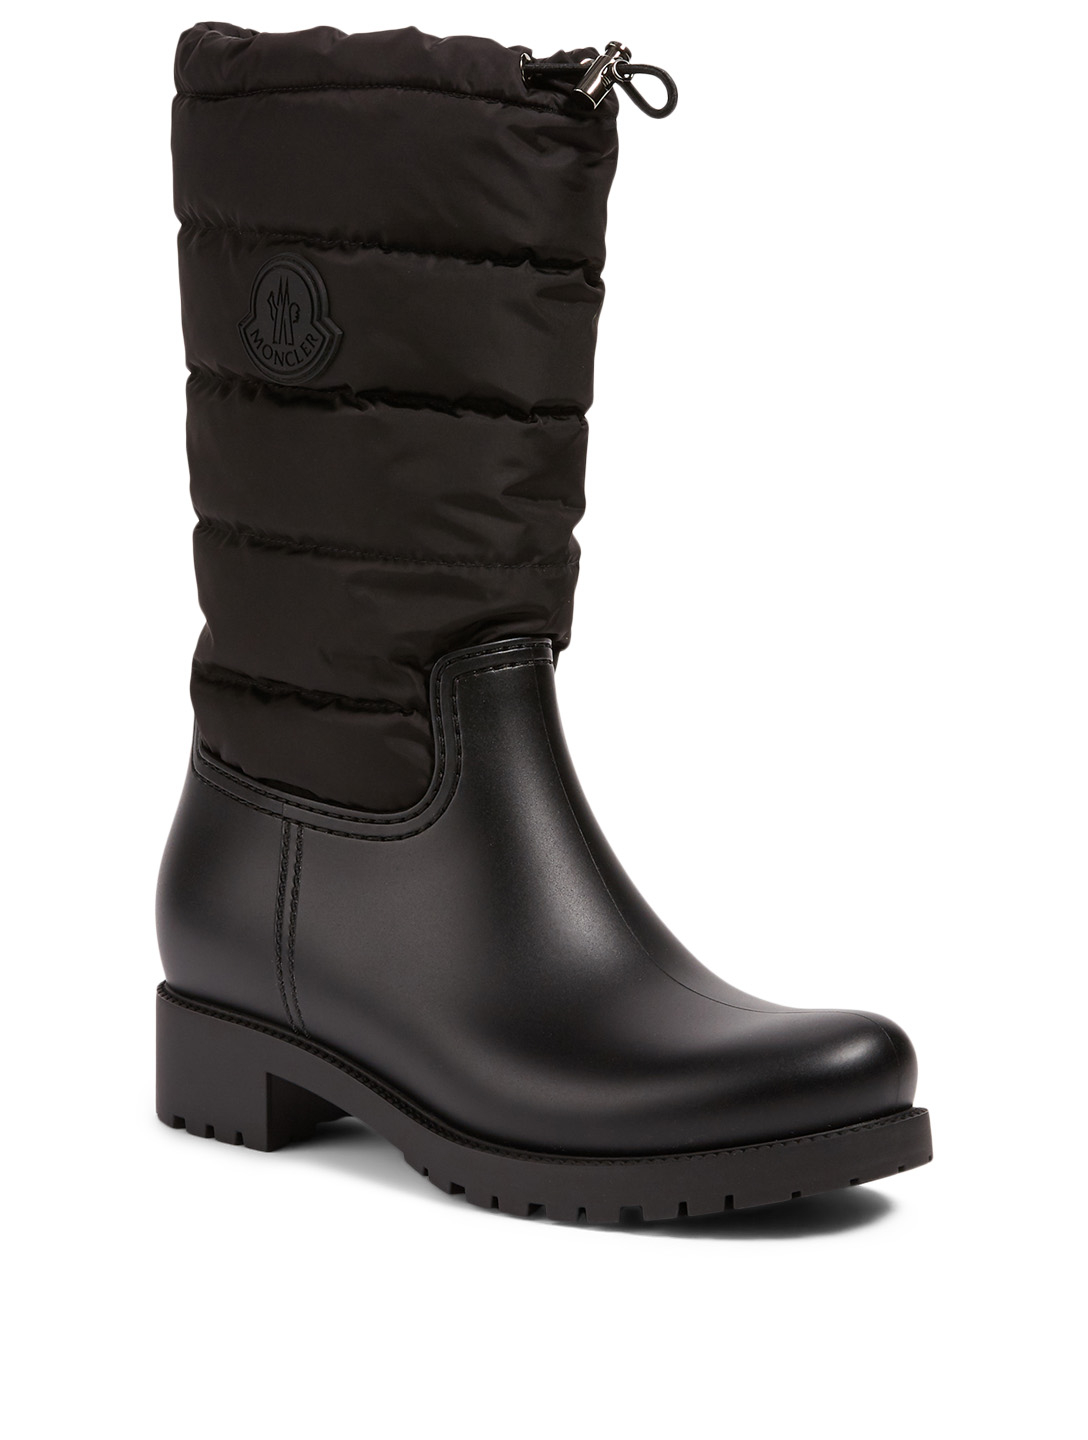 MONCLER Ginette Nylon And Rubber Rain Boots Women's Black